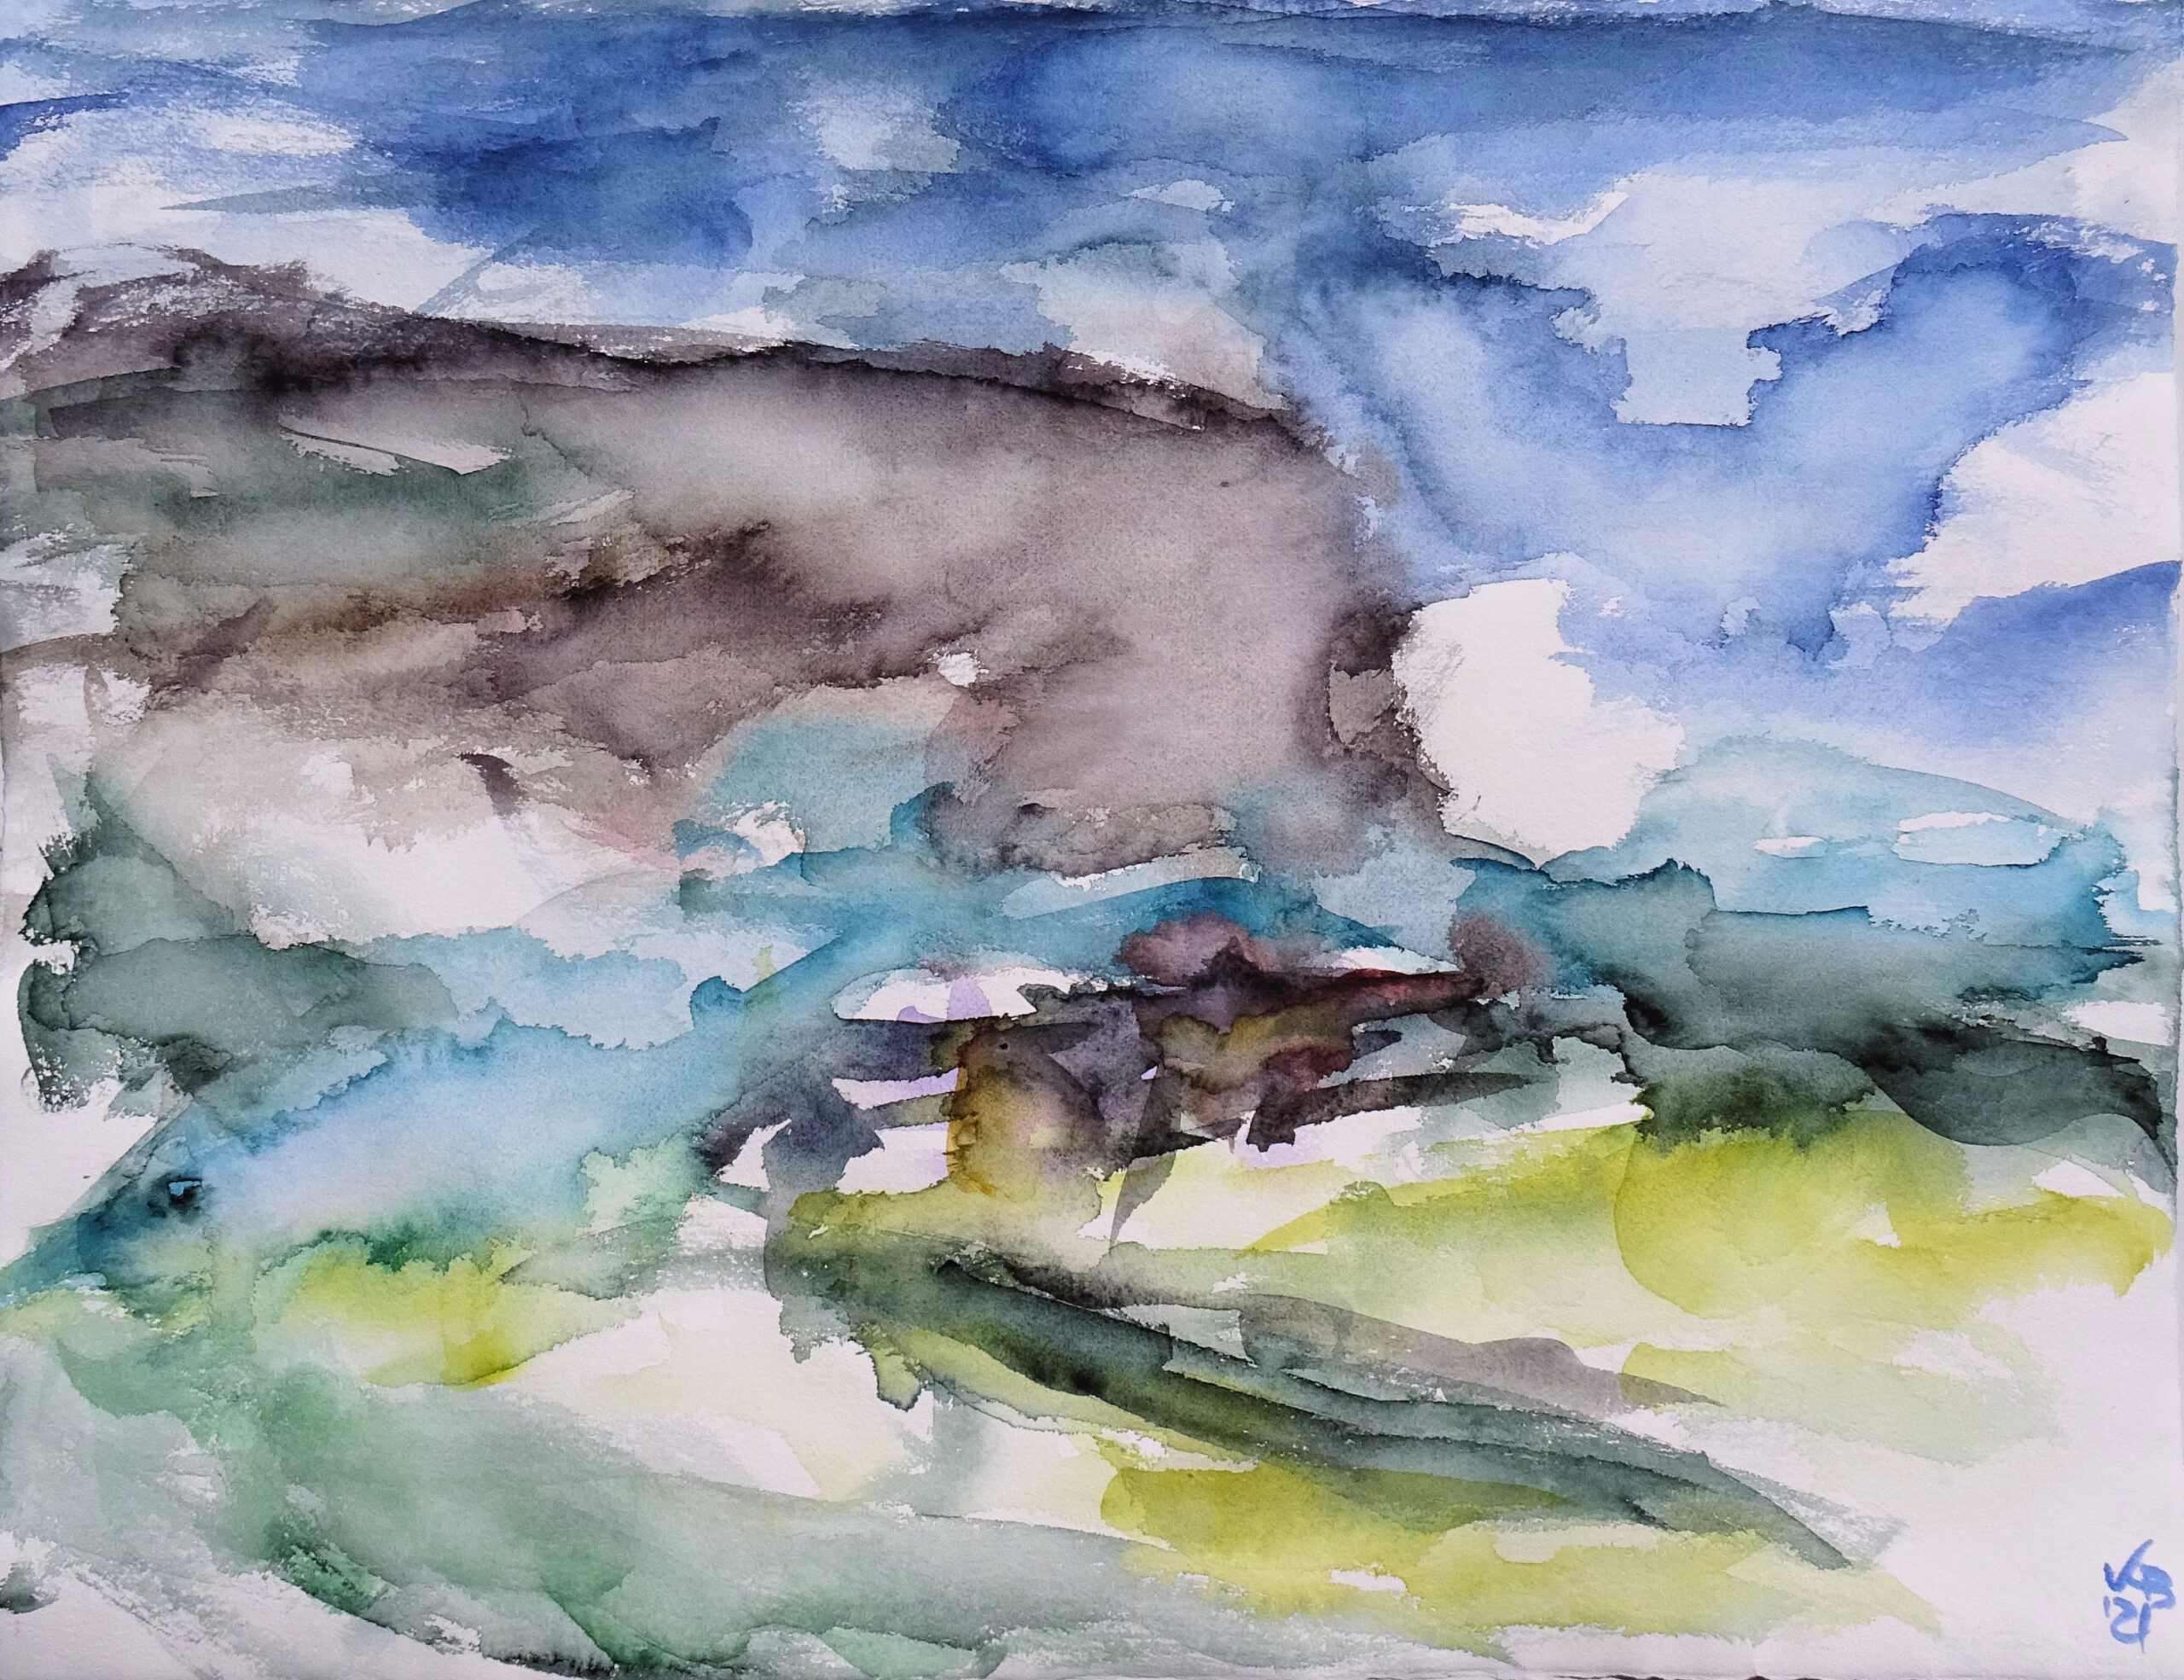 Rackwick Bay, Hoy, Orkney #2, Watercolour 65 x 50 cm, © 2021 by Klaus Bölling